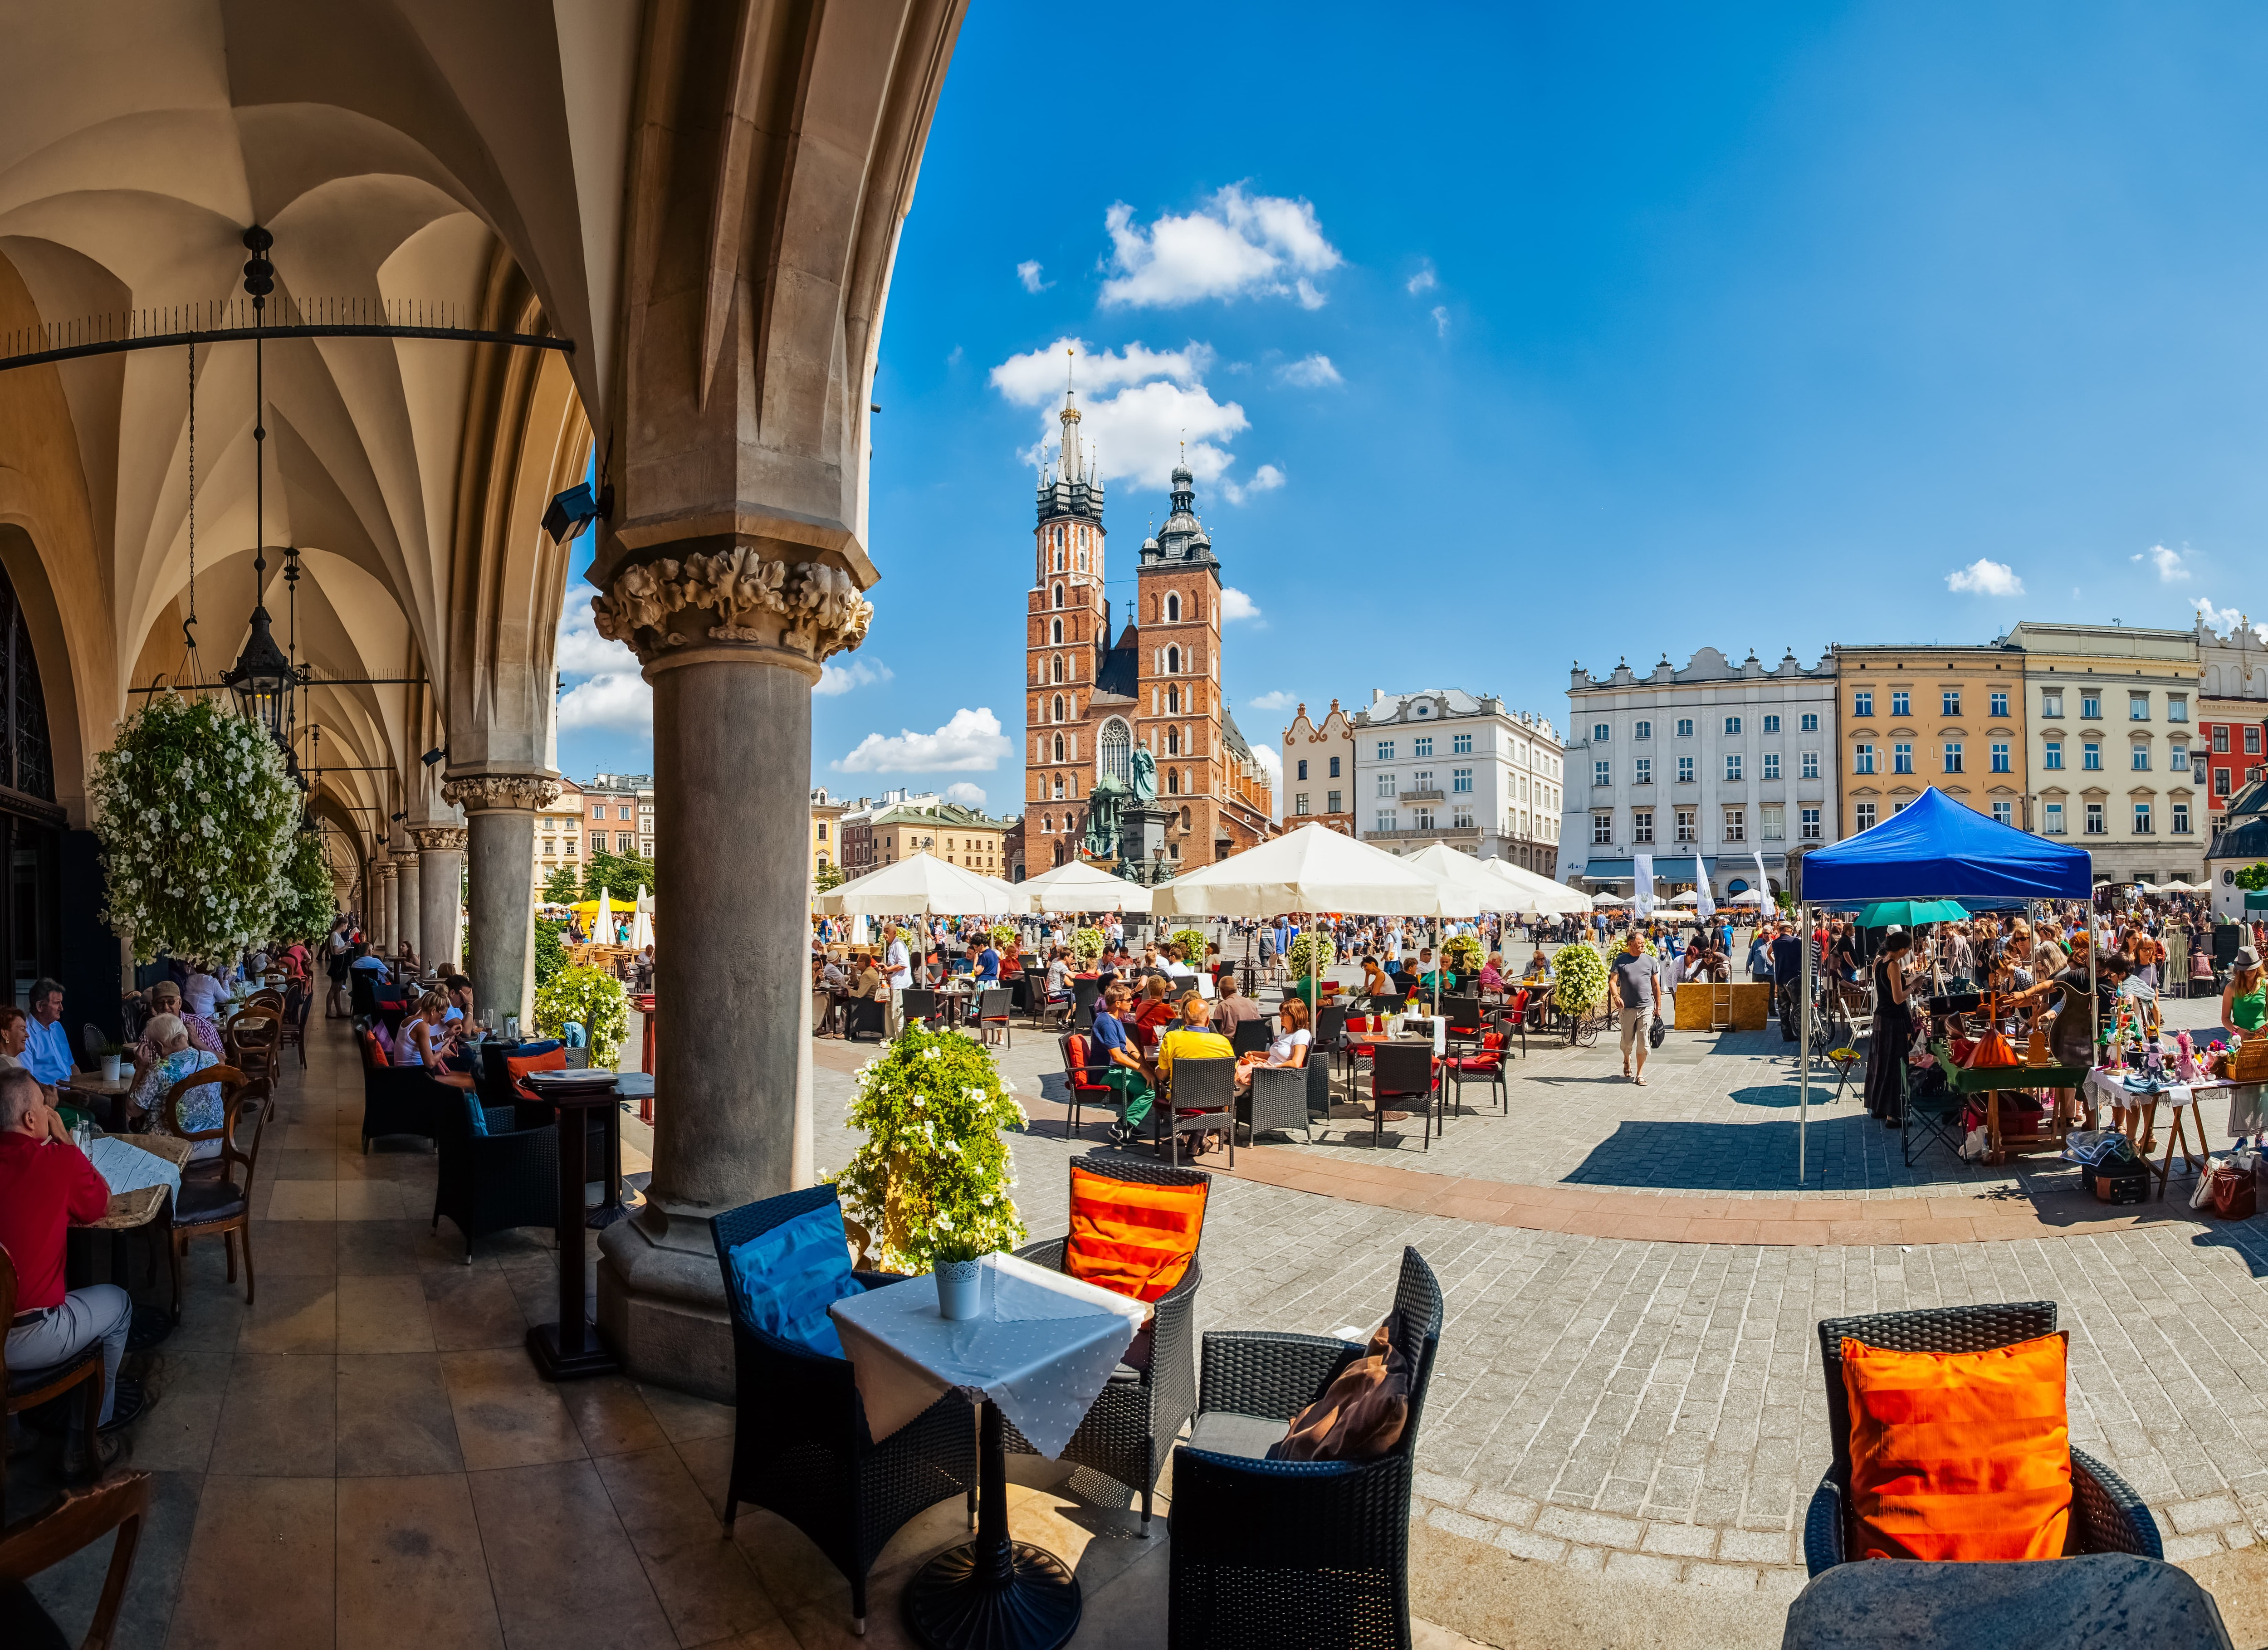 Coffee under Arches of the Cloth Hall Krakow